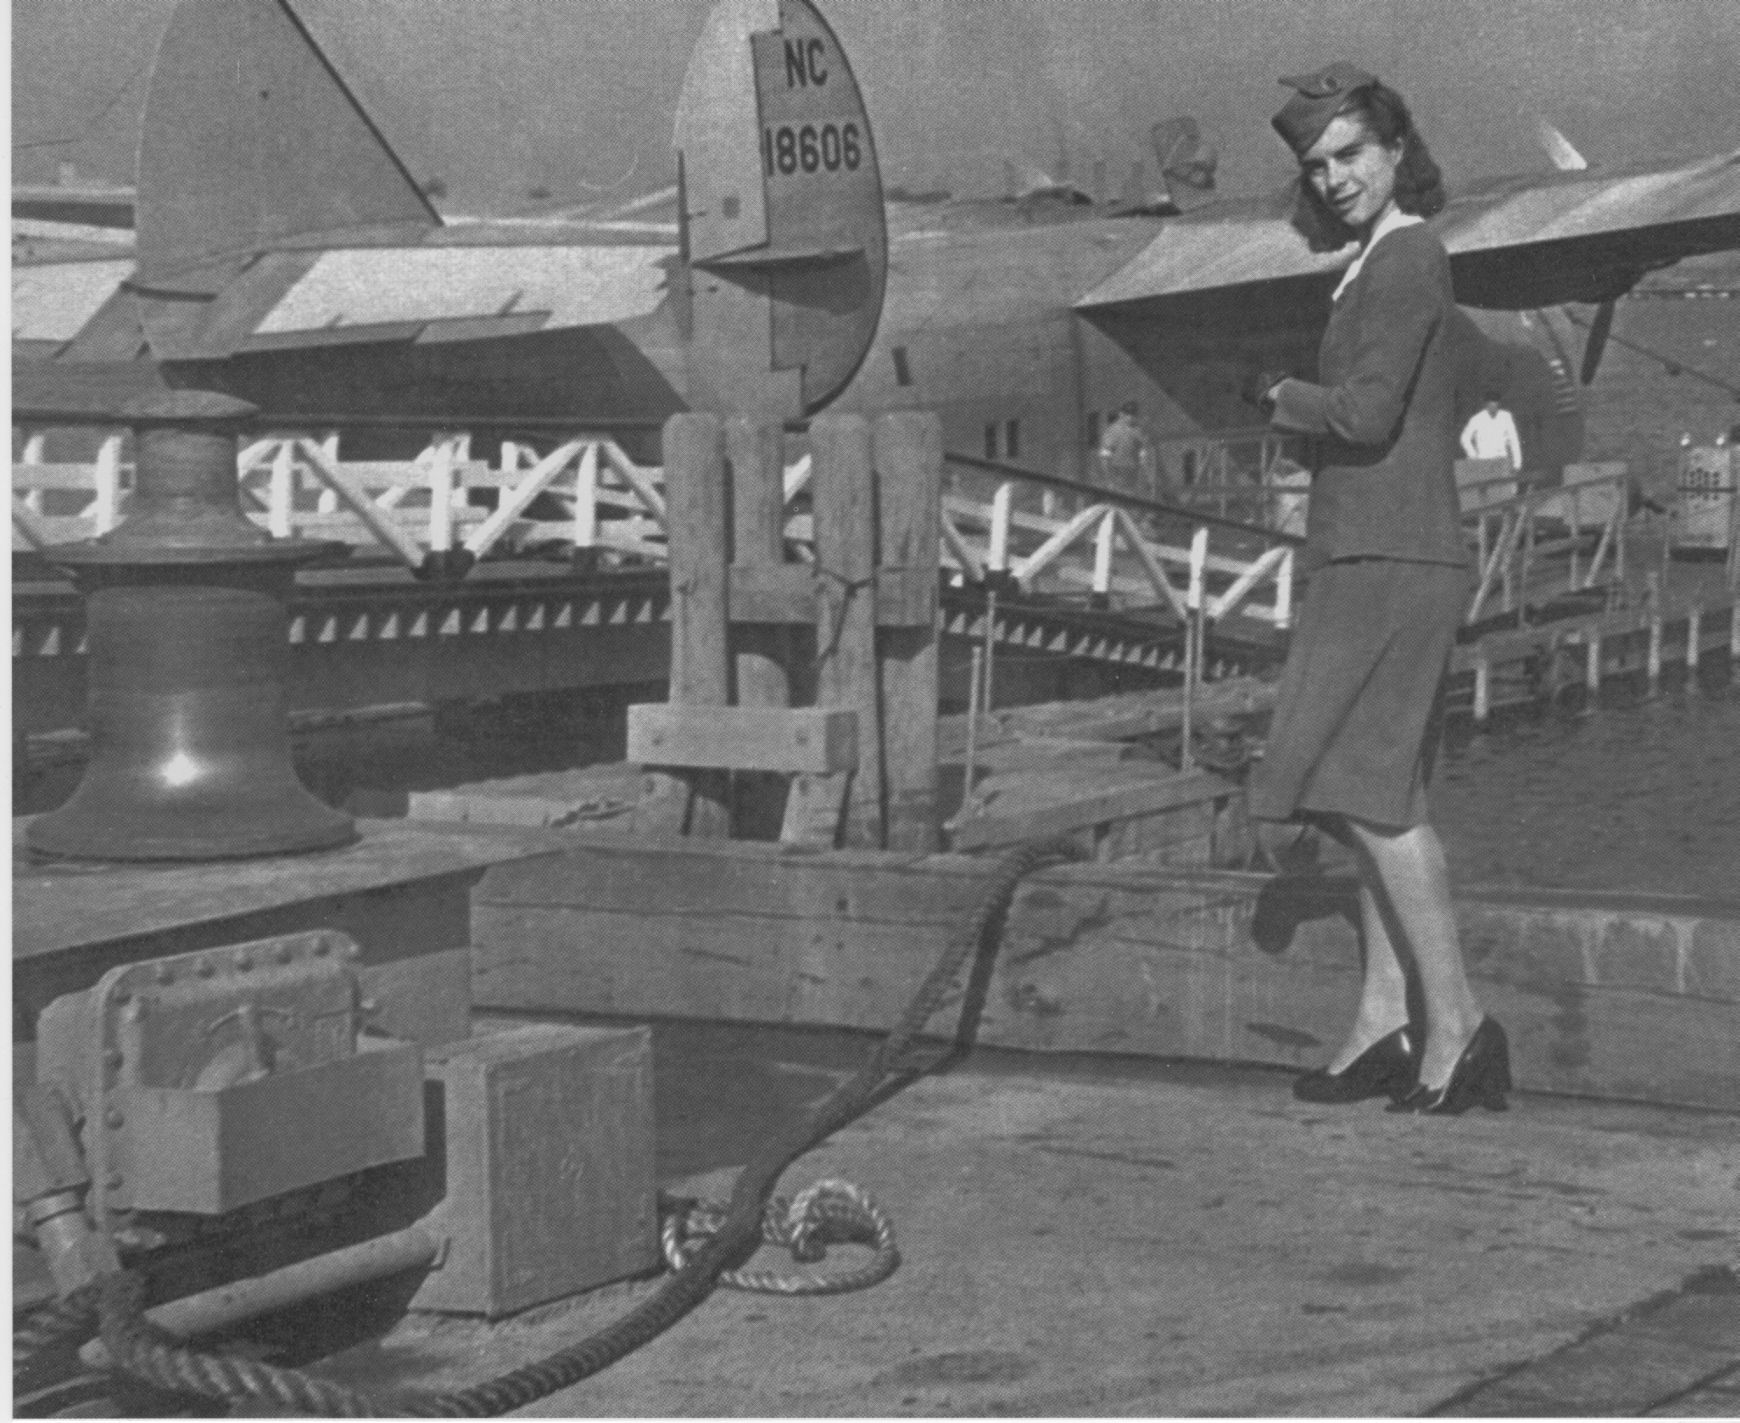 1945 Stewardess Lotta Westerhortsmann posing with Boeing 314 flying boat at the dock